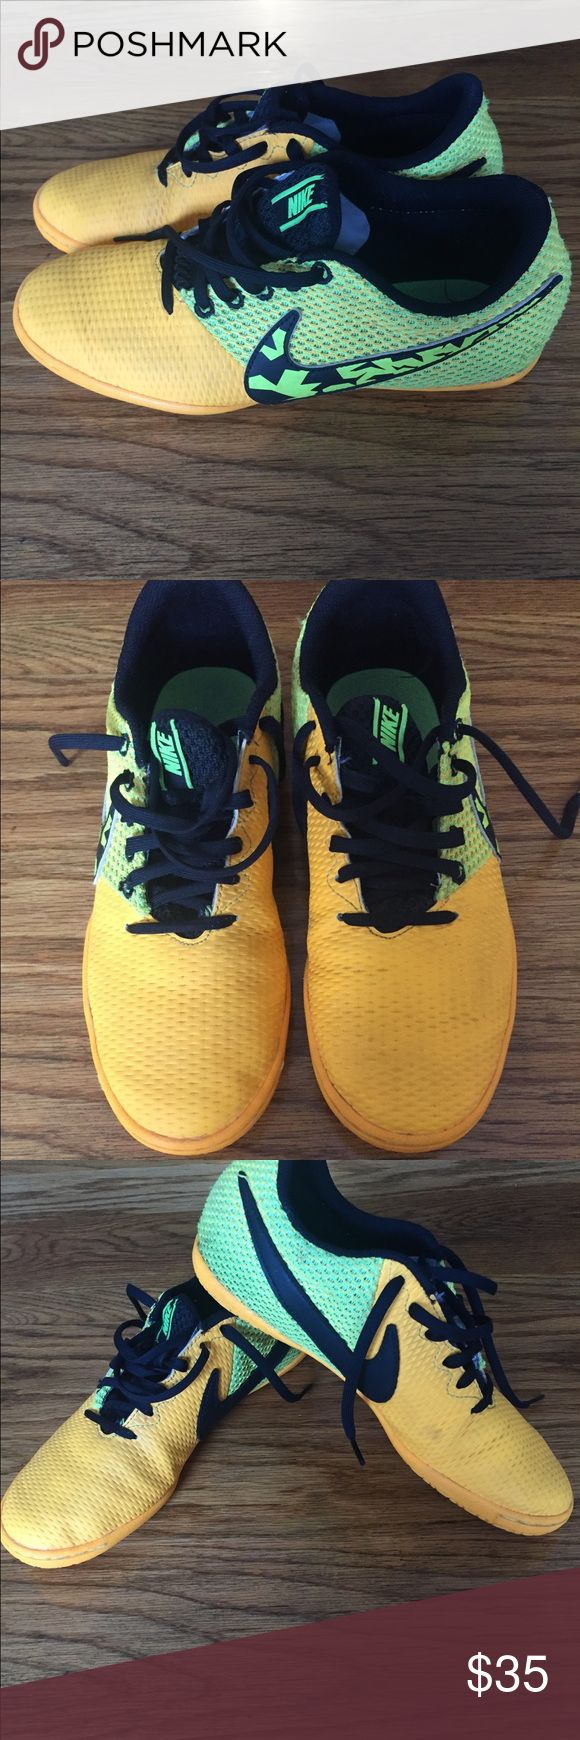 Nike Training Shoes Excellent condition, the color is brighter in person.  Unisex Ships fast You won't be disappointed. Nike Shoes Sneakers